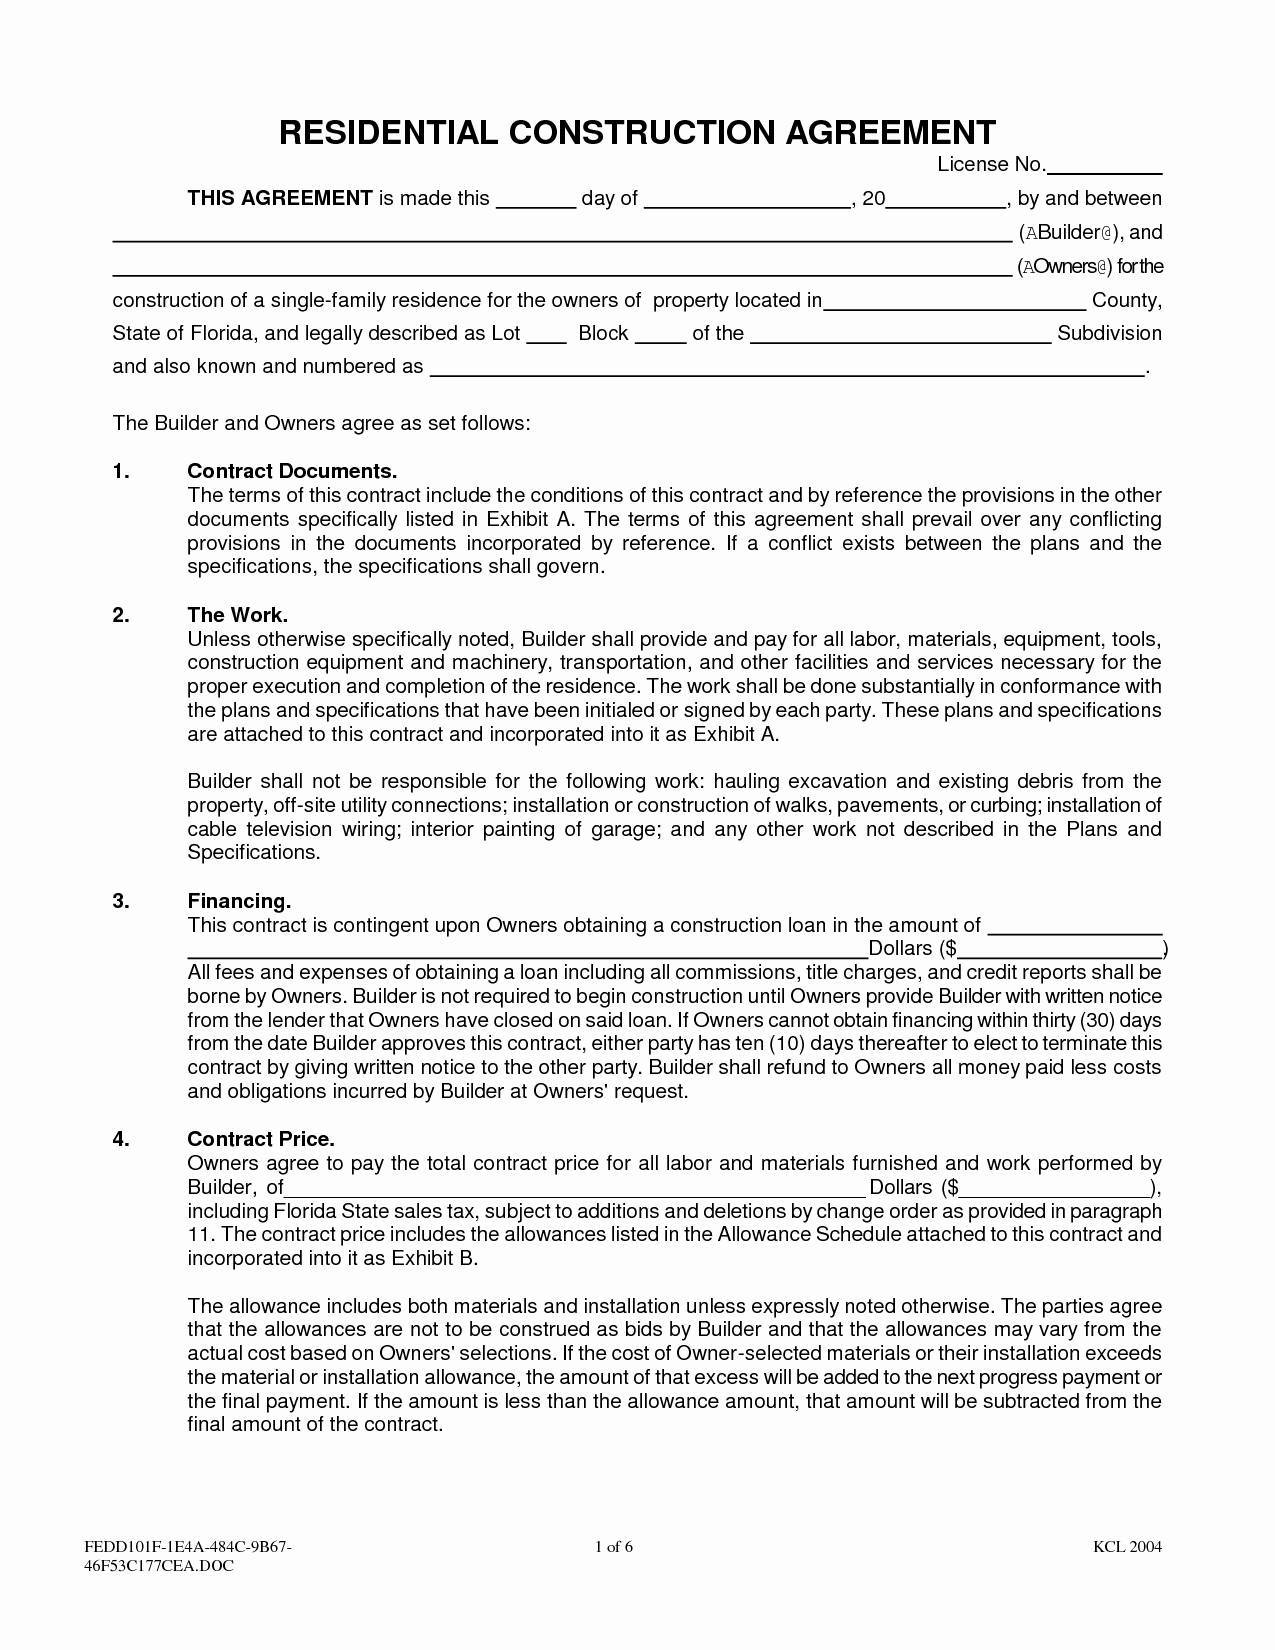 Interior Design Letter Of Agreement Template - Landscaping Scope Work Template Fresh Contract Interior Design